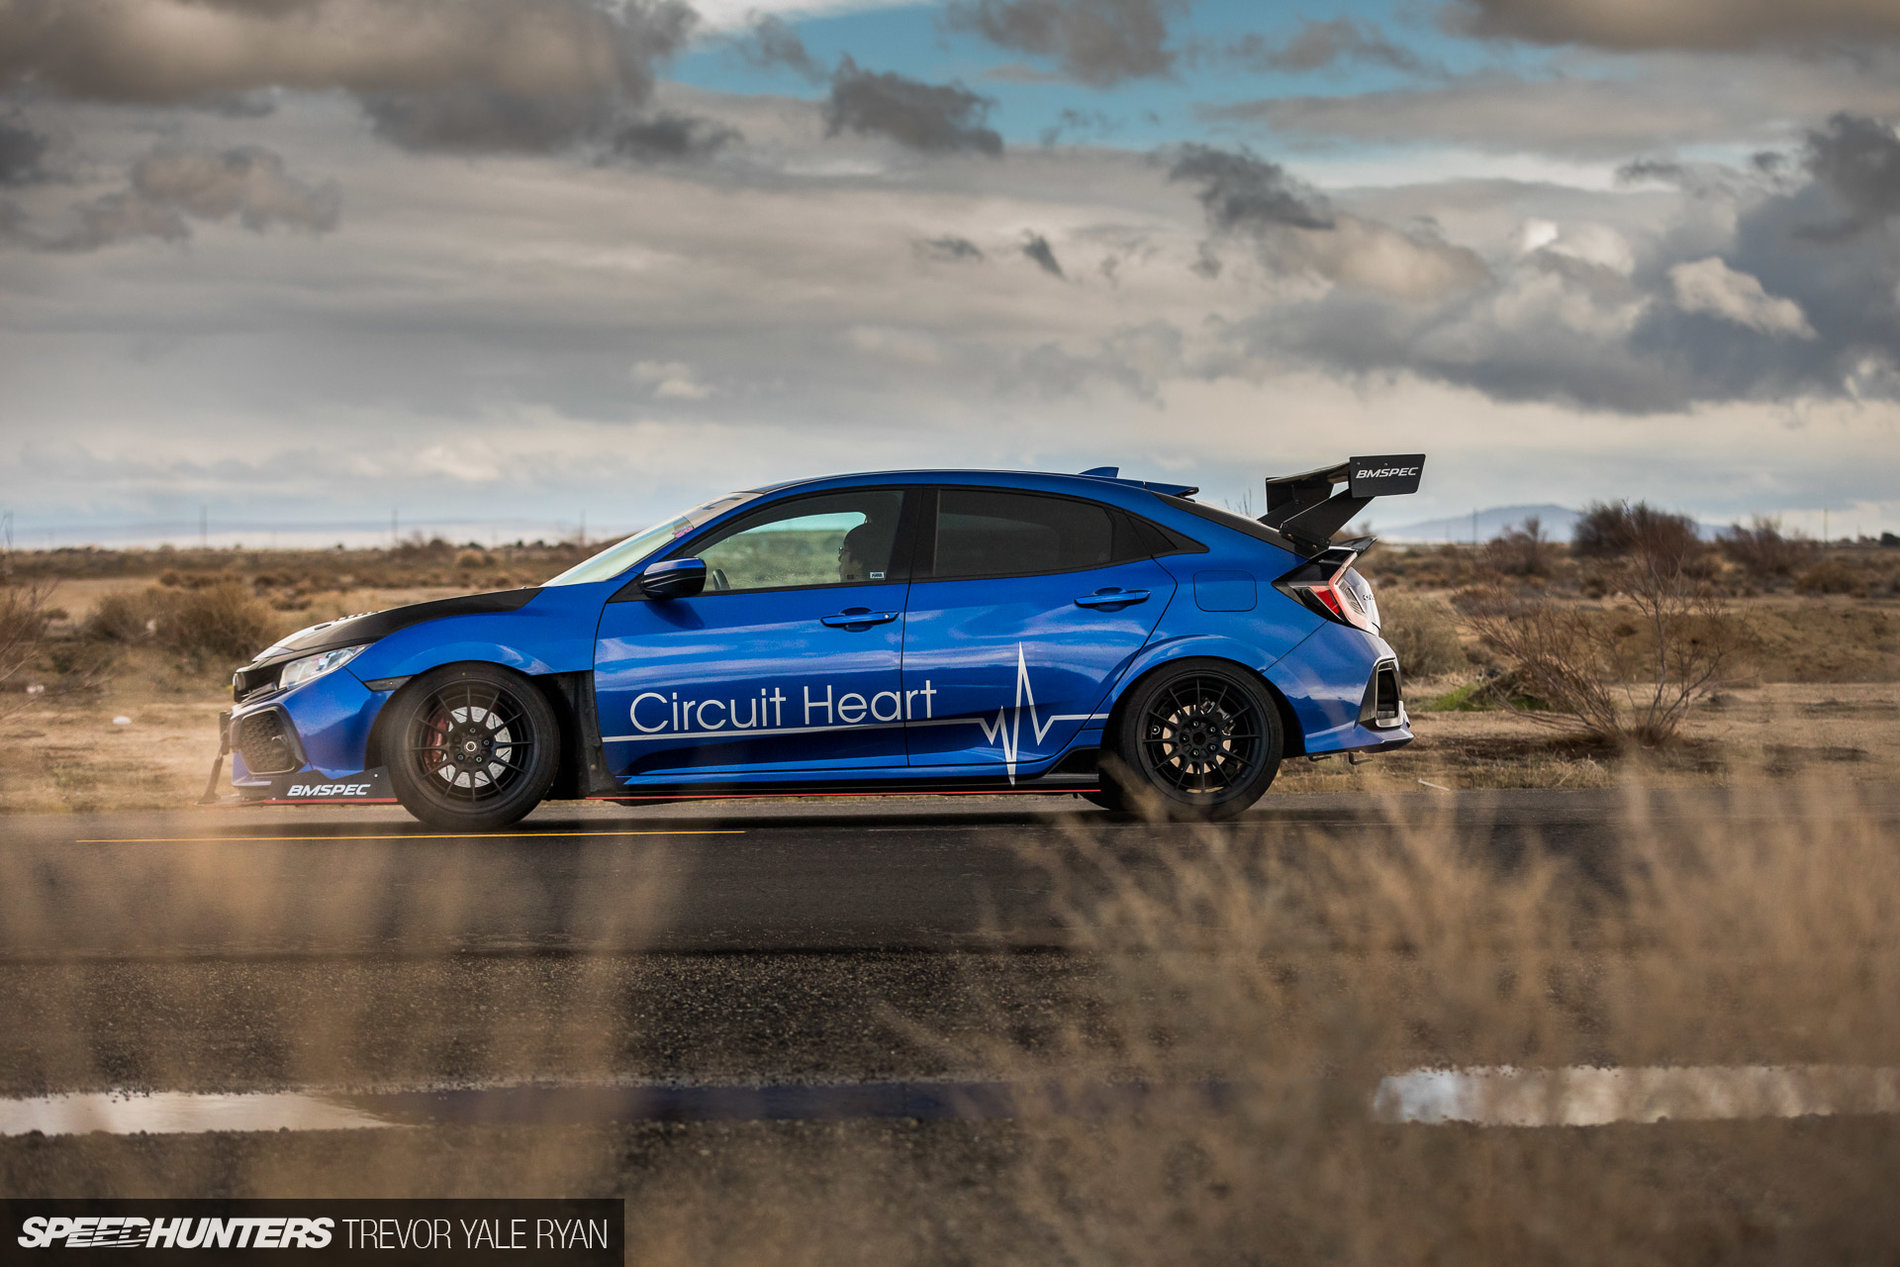 2018-Speedhunters_BMSPEC-Civic-Circuit-Heart_Trevor-Ryan-047_6674.jpg